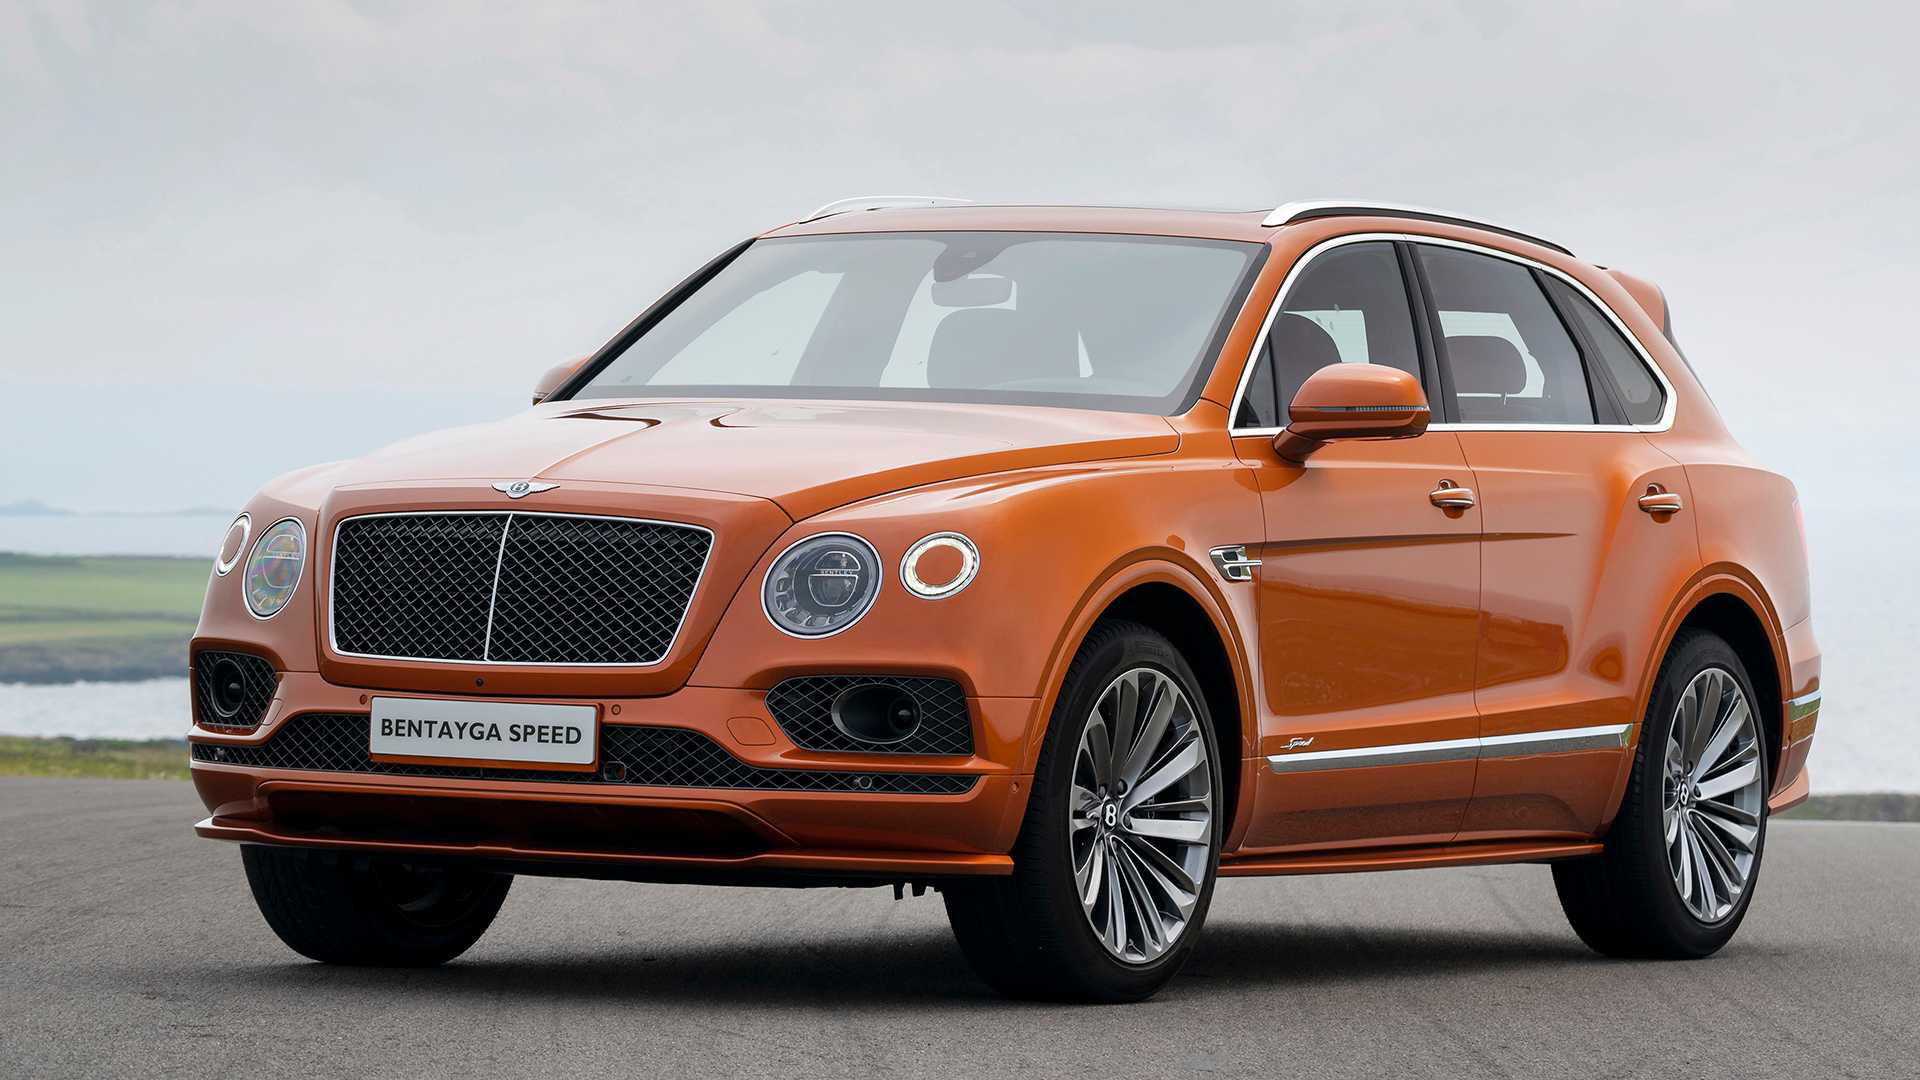 2020 Bentley Bentayga Speed First Drive: More Than Fast